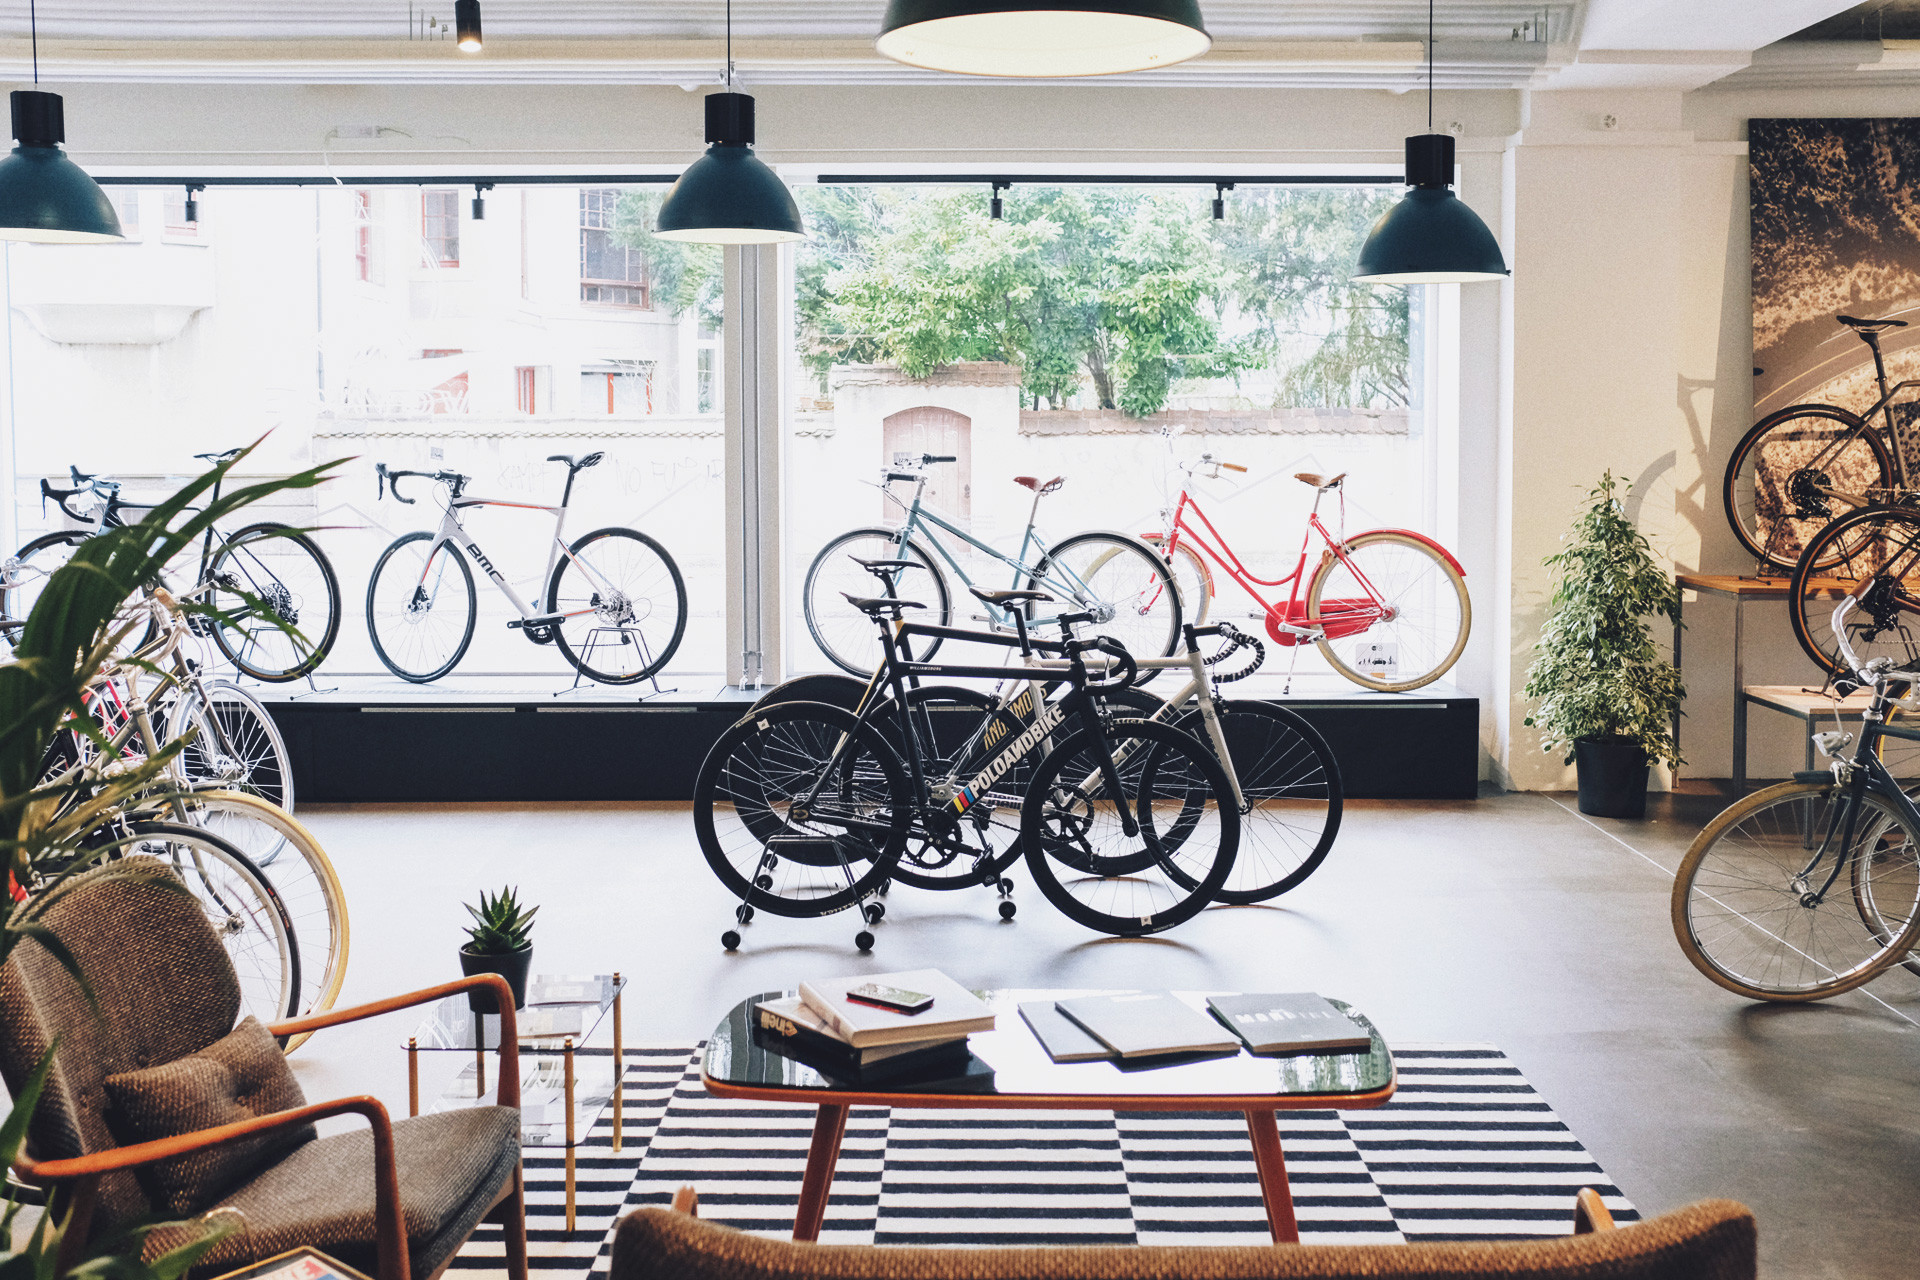 Fahrrder - Fixie/ Singlespeed - Voyage Cycling Store